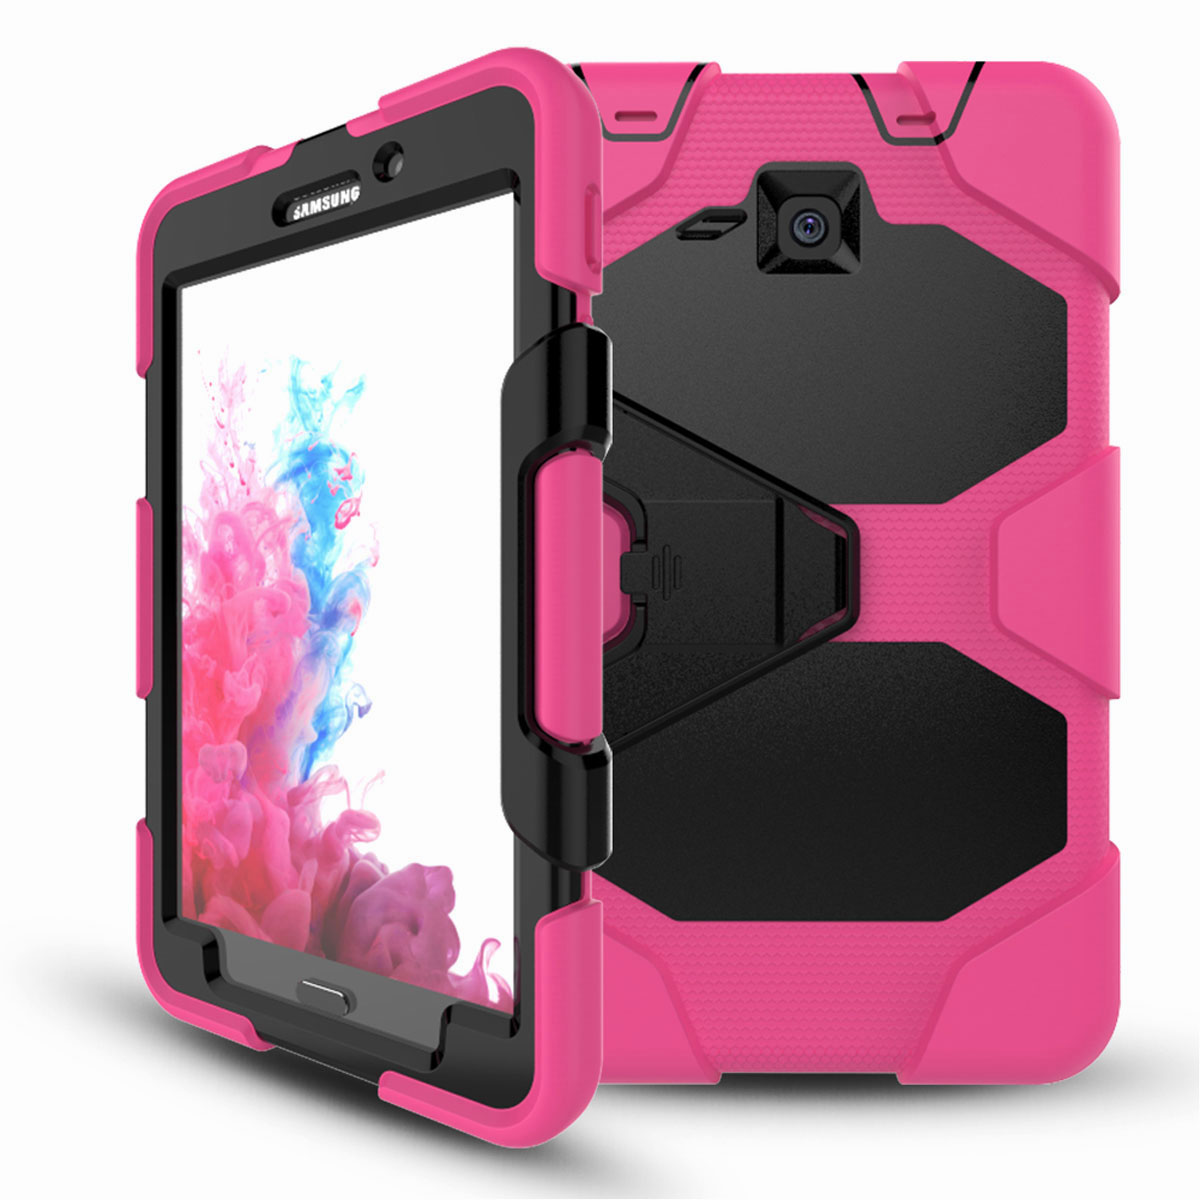 Tablet-Case-For-Samsung-Galaxy-Tab-A-E-S2-Screen-Protective-Hybrid-Rubber-Cover thumbnail 15